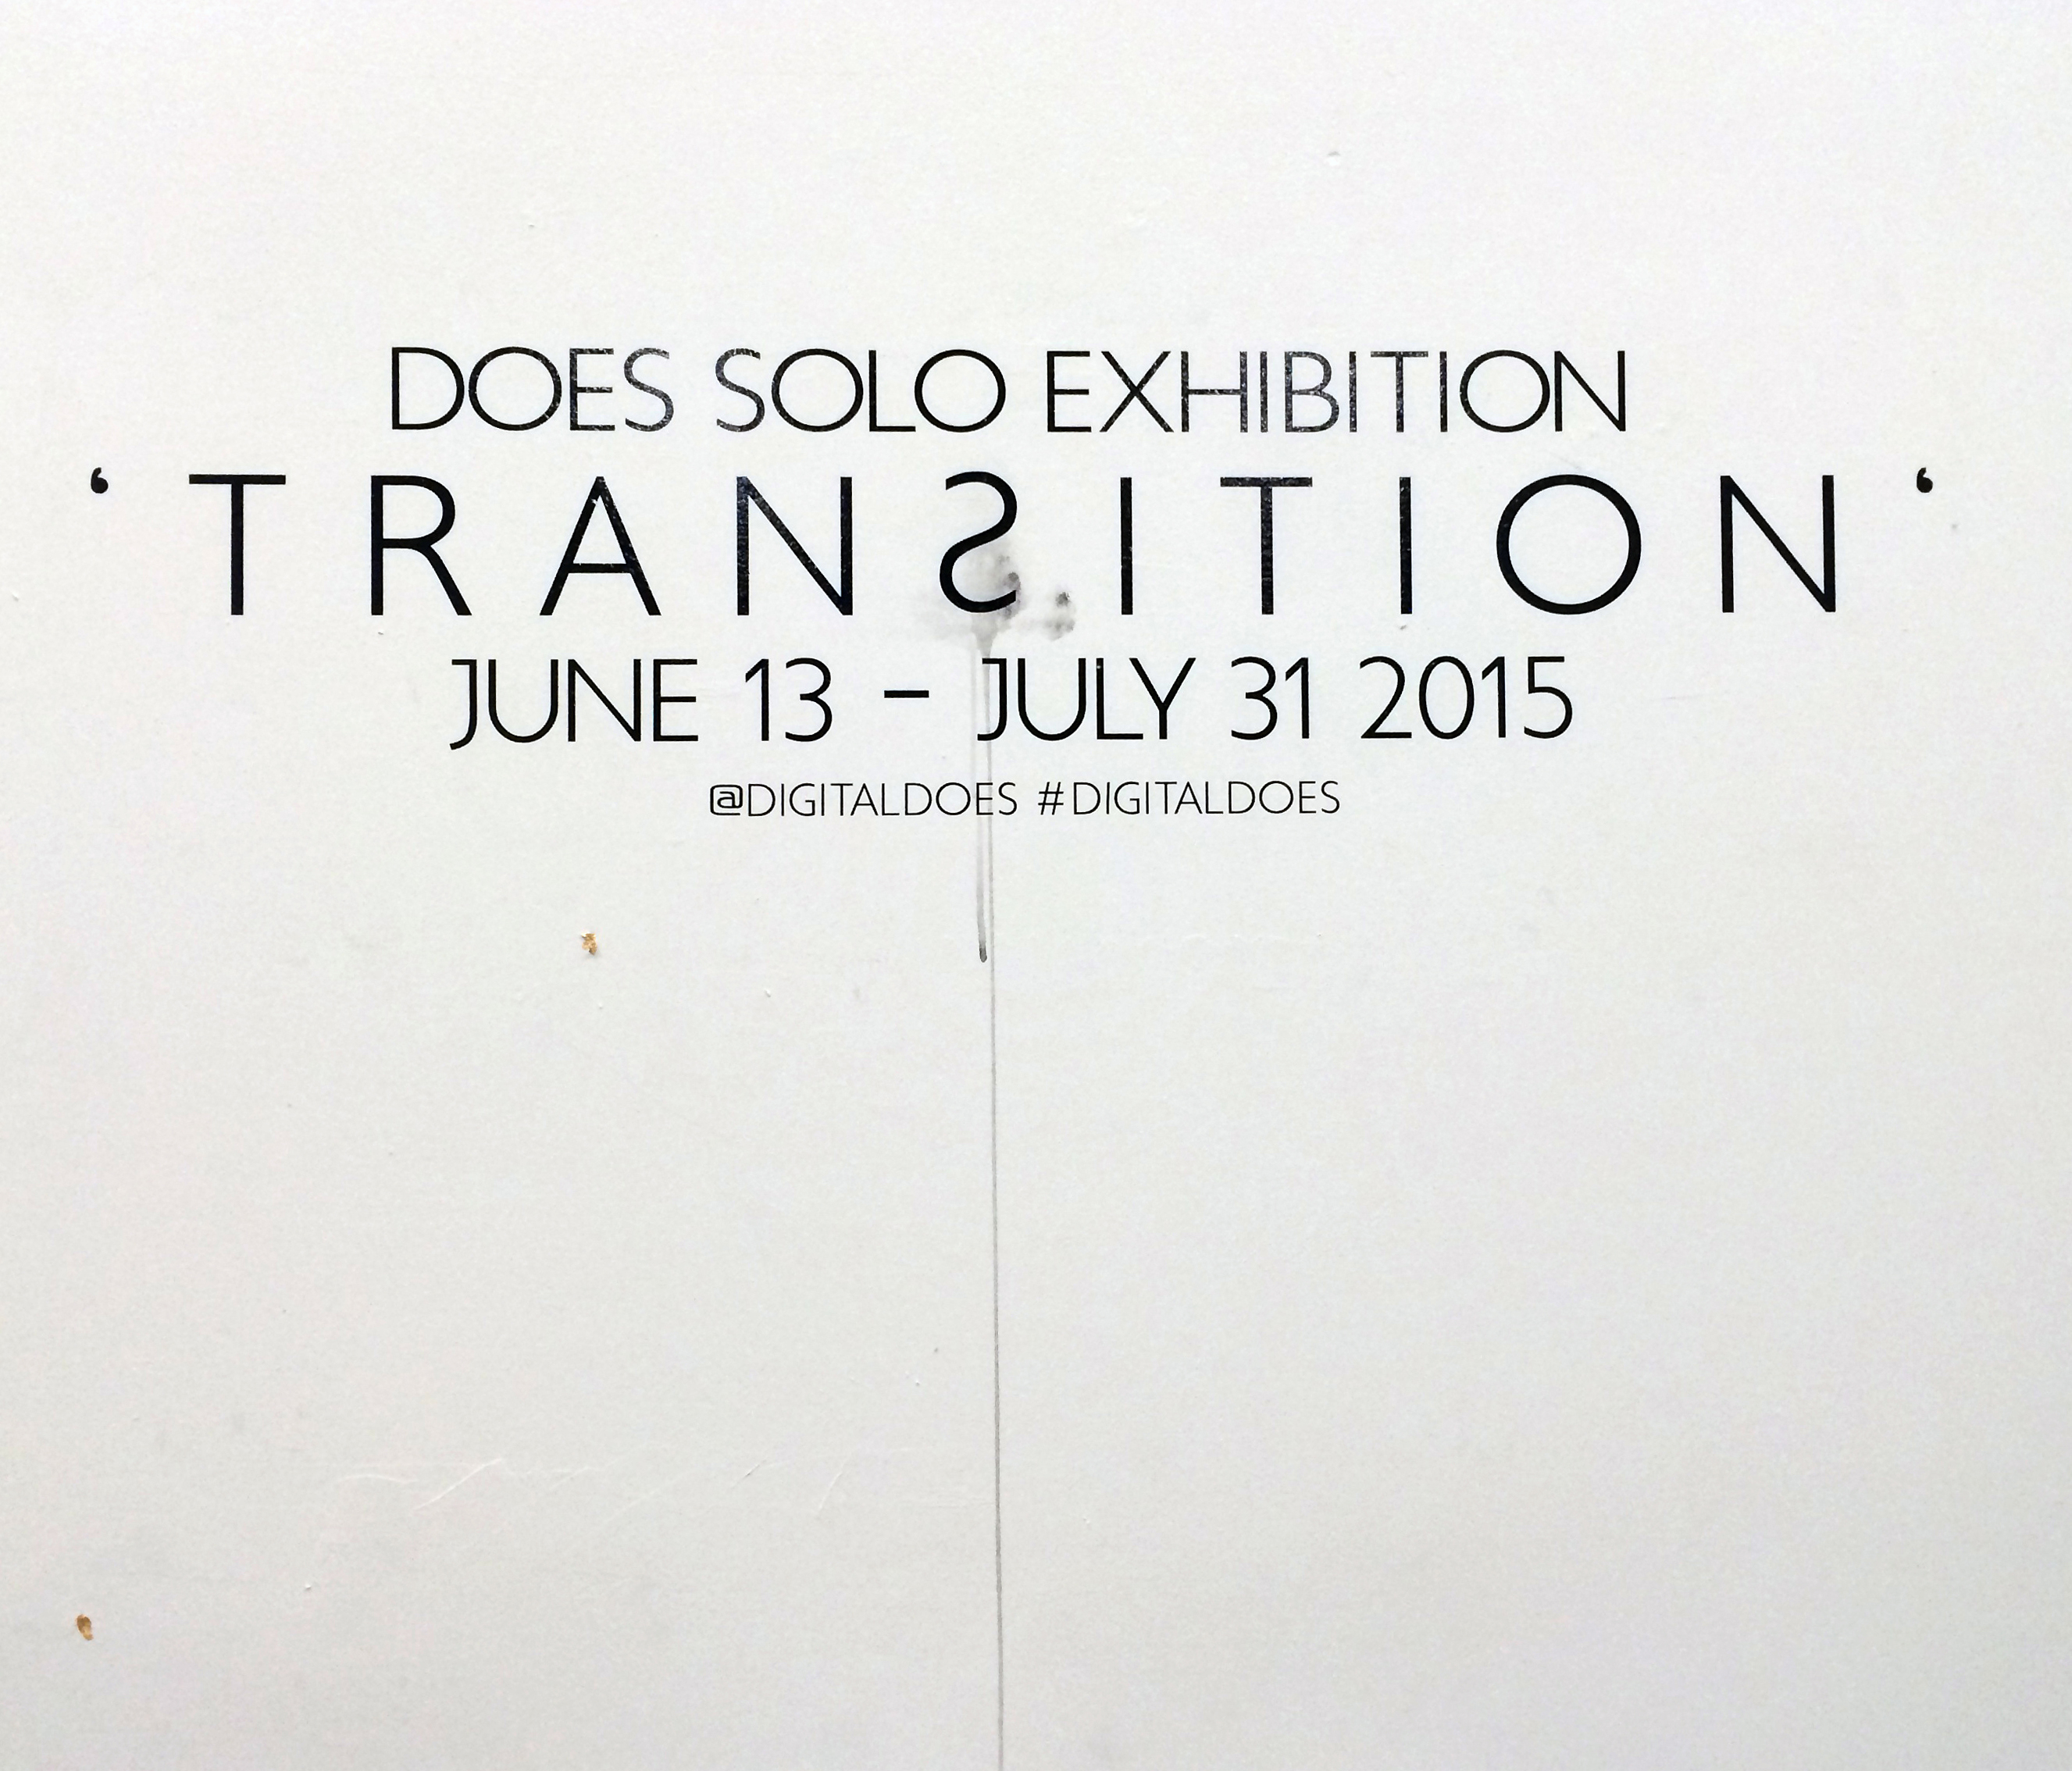 A work by Does - Exhibition transition chicago 2